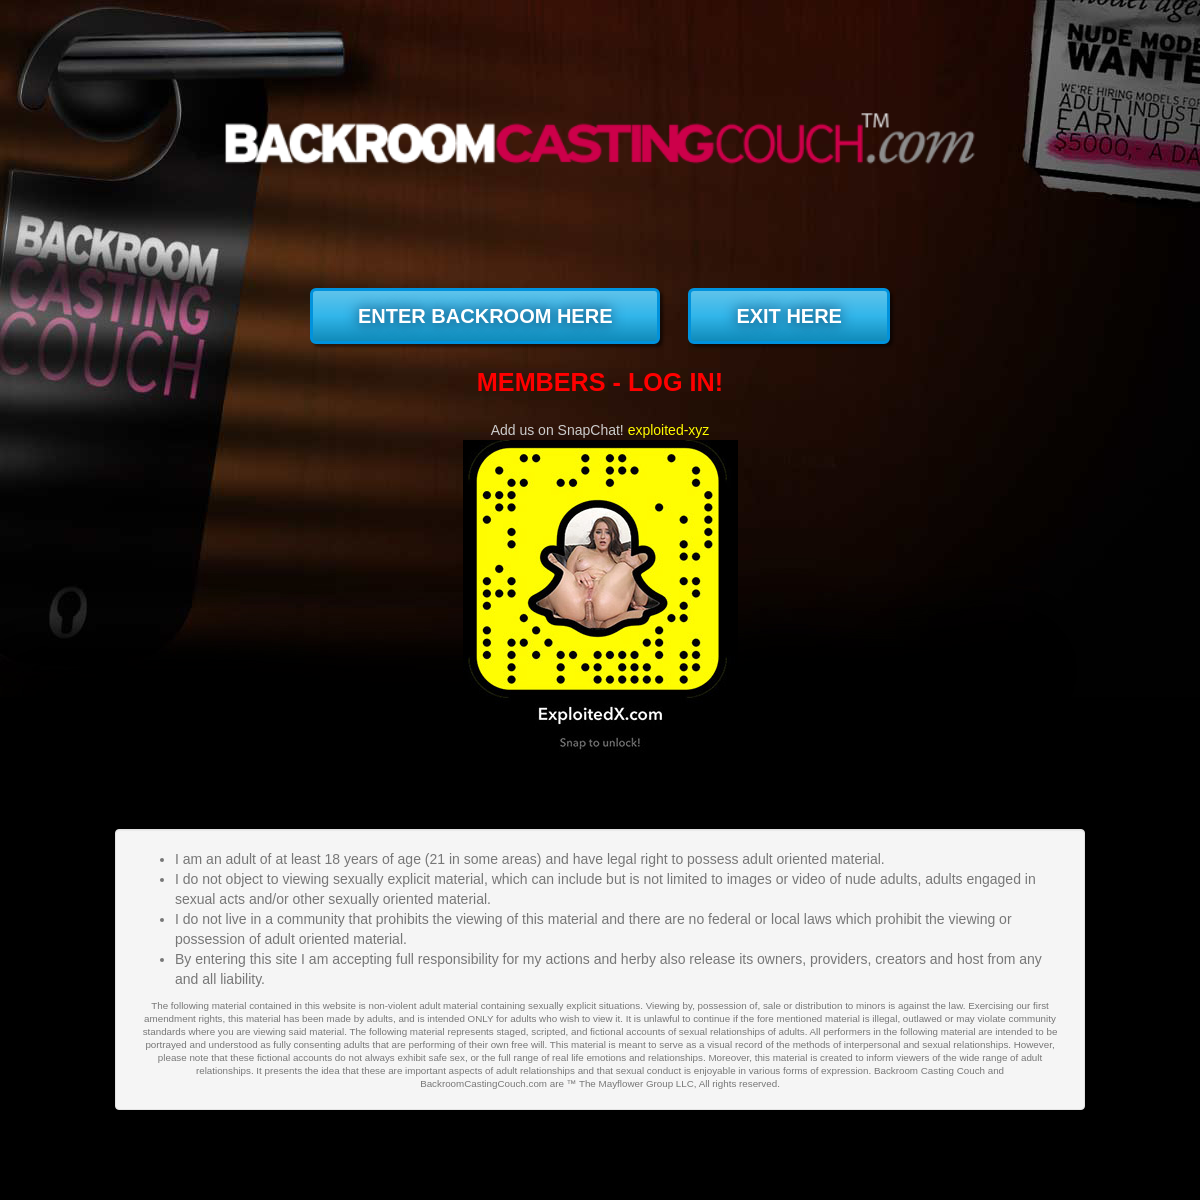 A complete backup of www.backroomcastingcouch.com